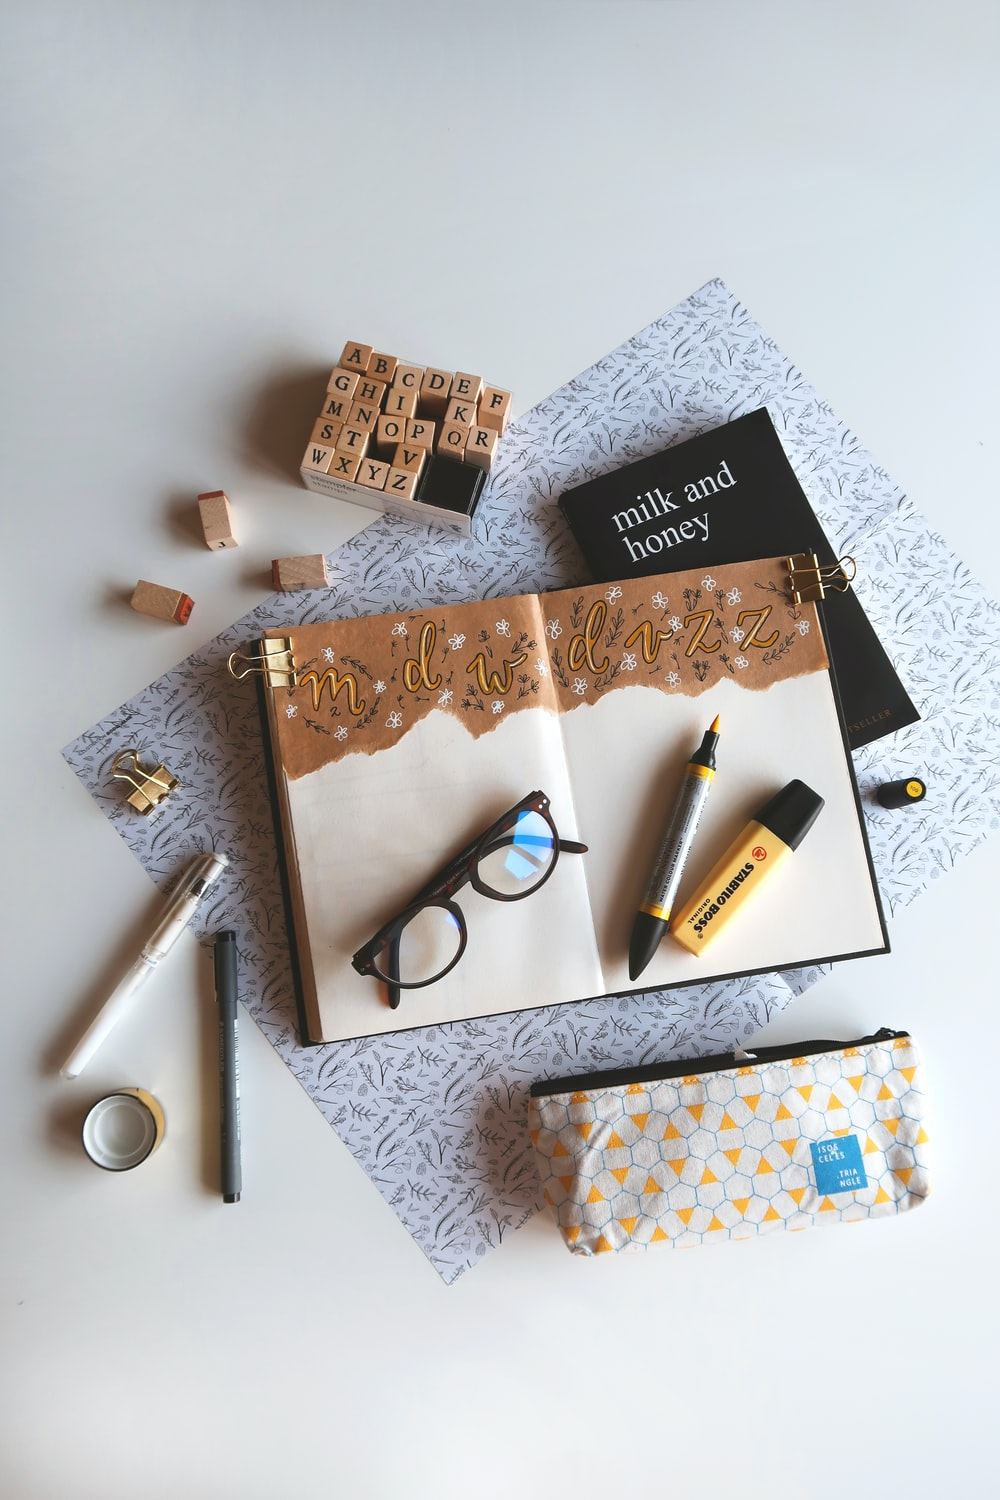 book, marker pen, and eyeglasses on white surface